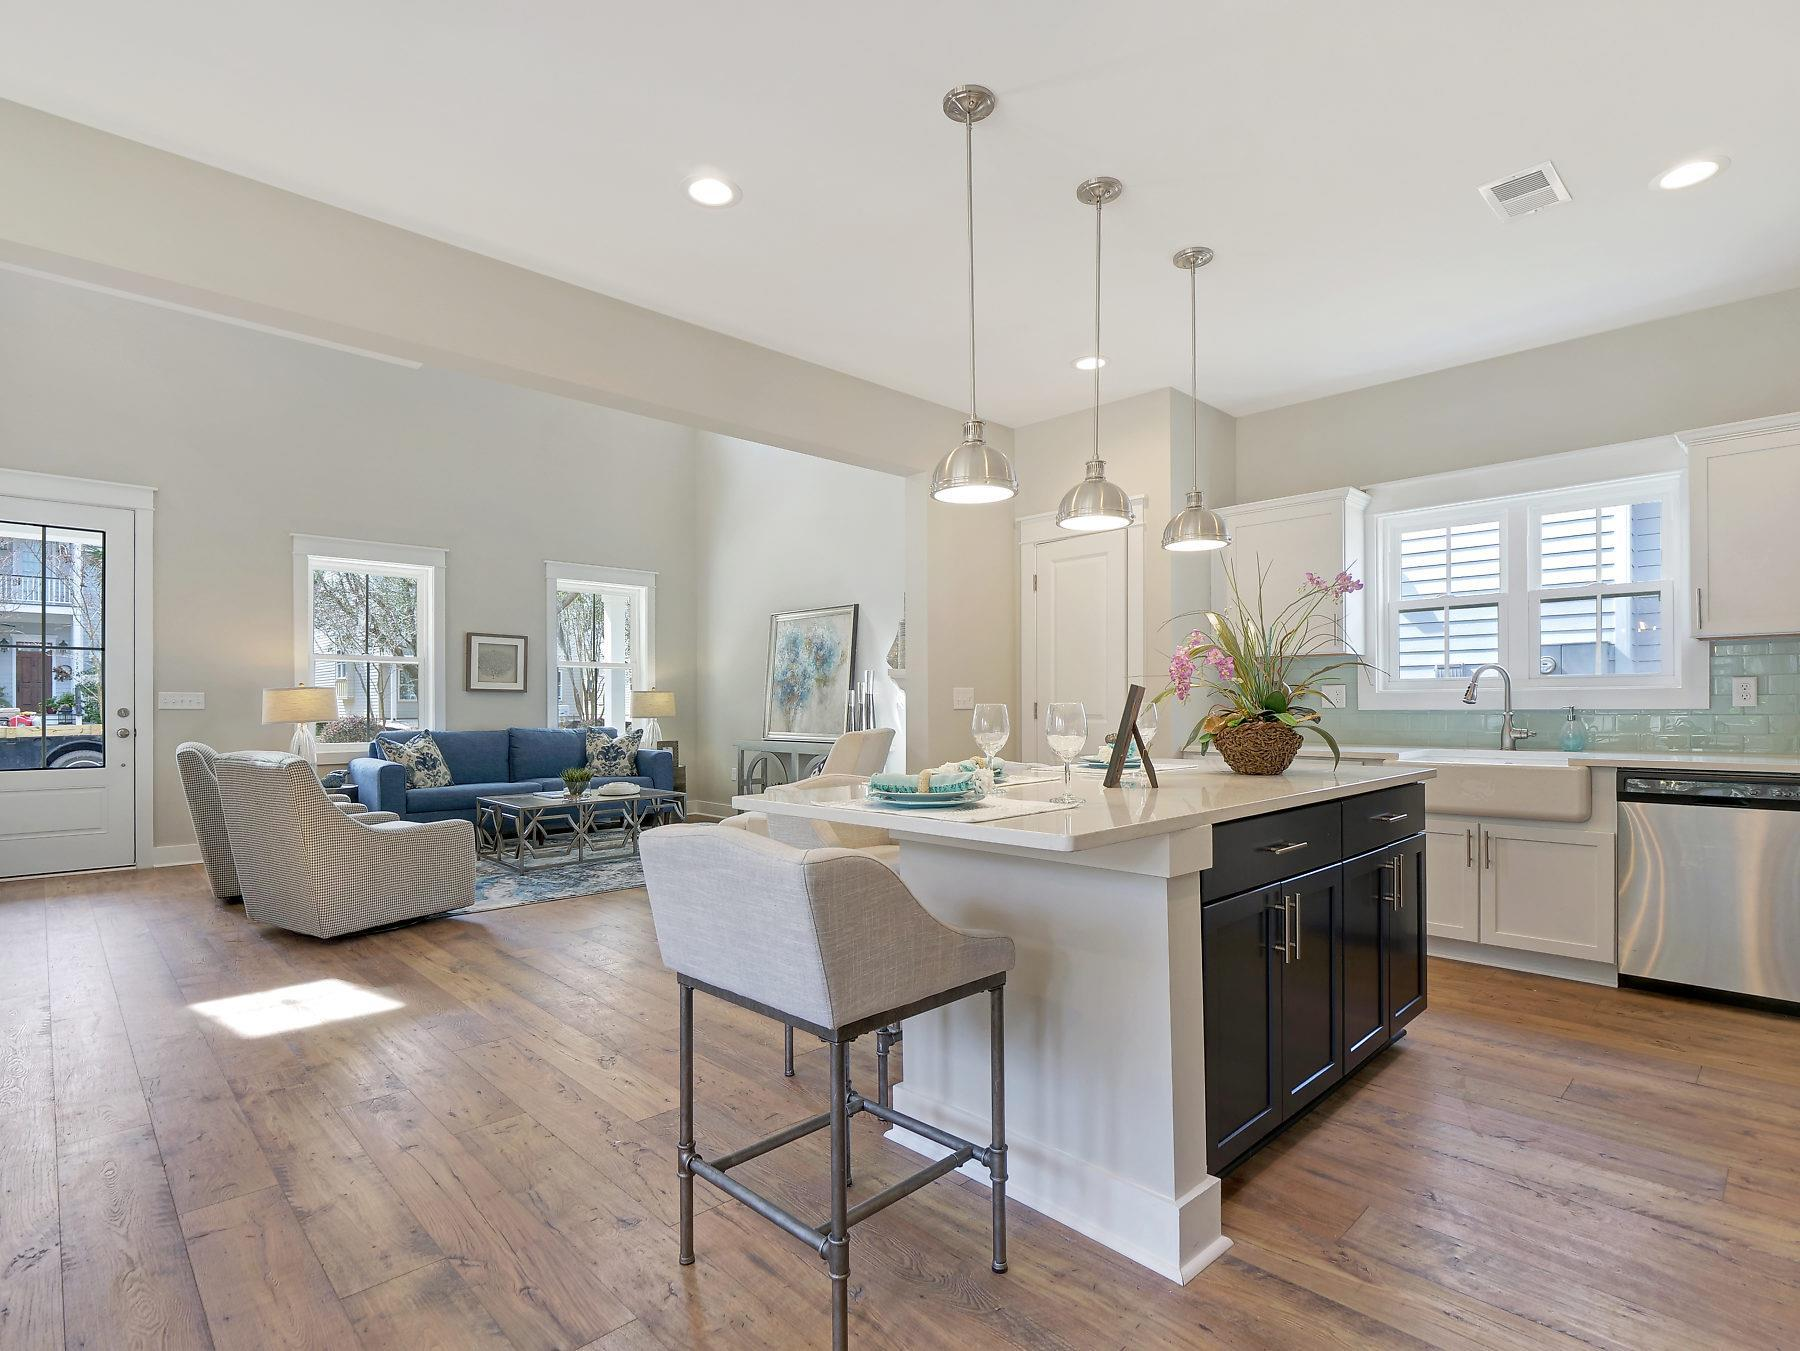 Living Area featured in The Ashley River II By Village Park Homes in Savannah, GA